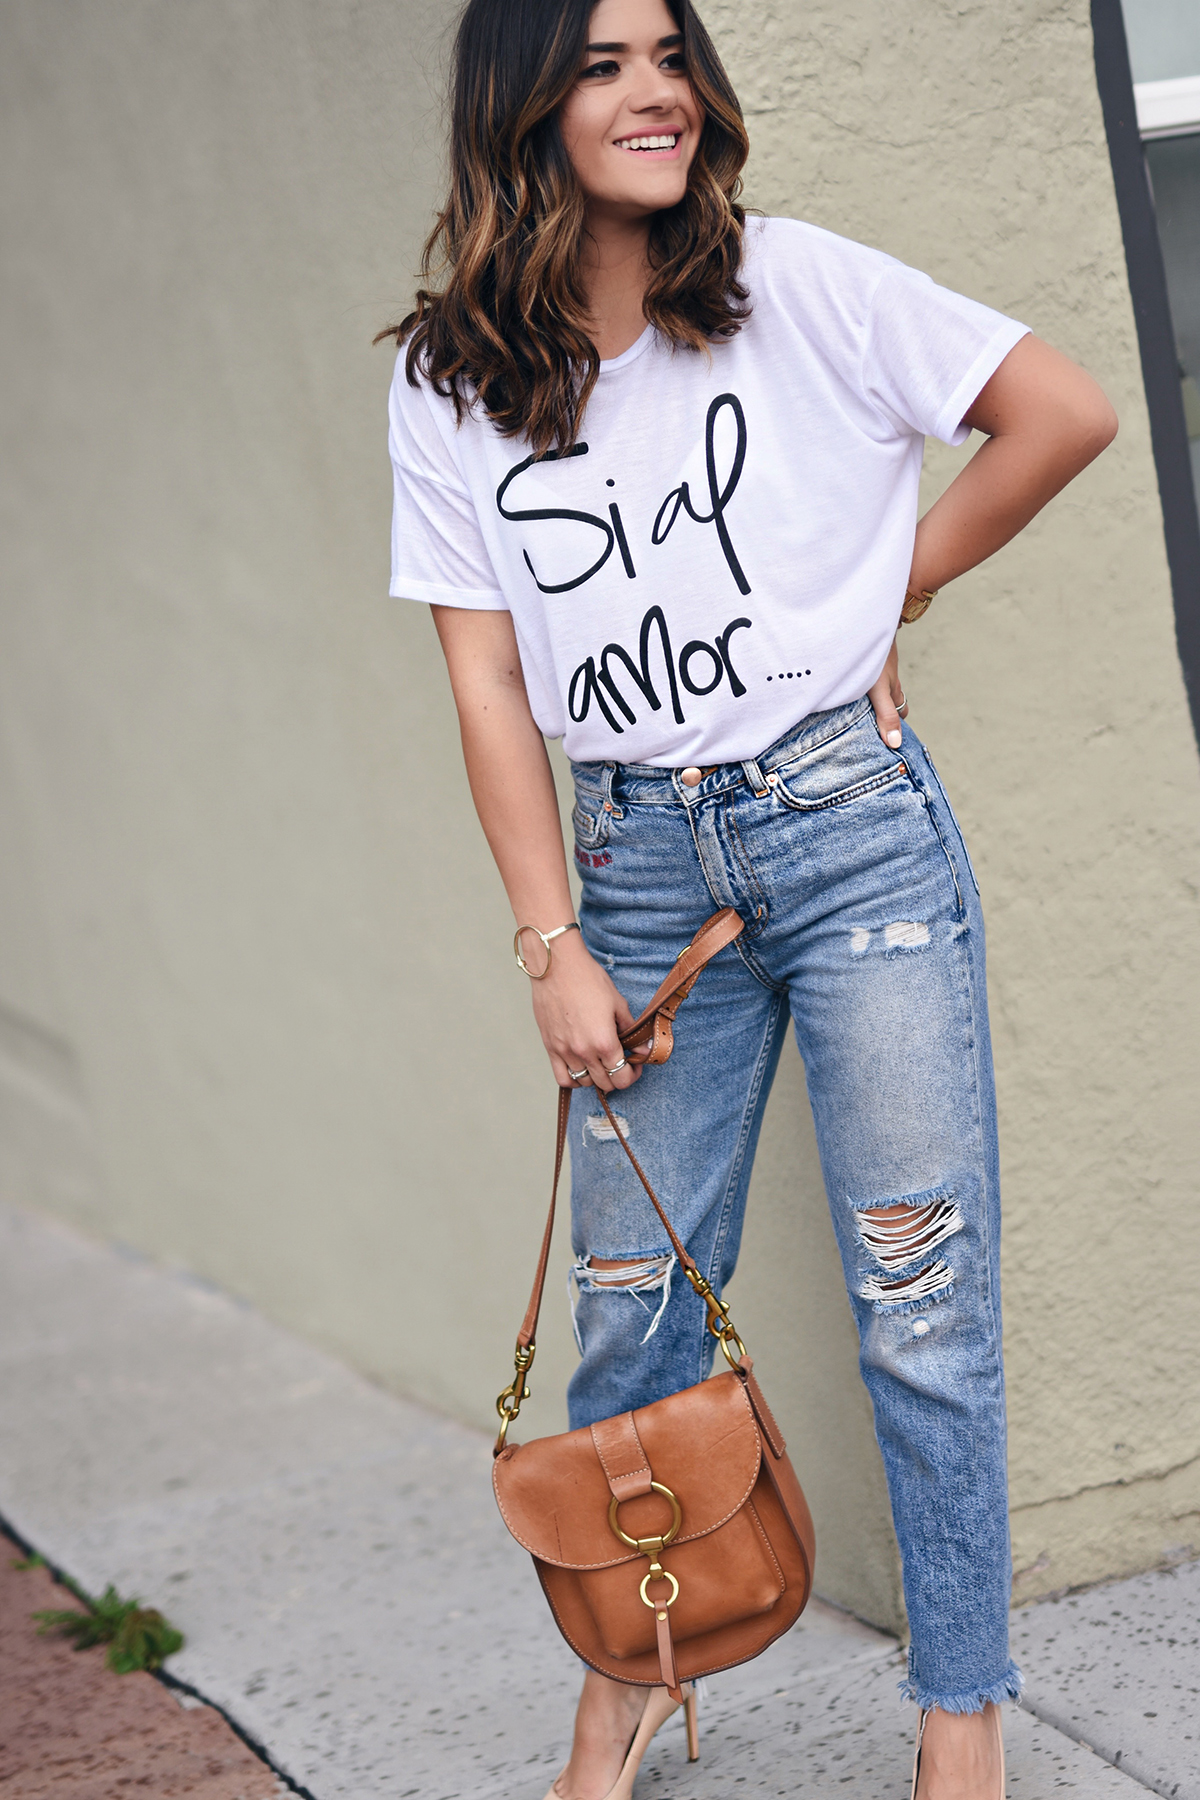 Carolina Hellal of Chic Talk wearing a t-shirt from the Si al amor t-shirt collection  by Chic Talk.